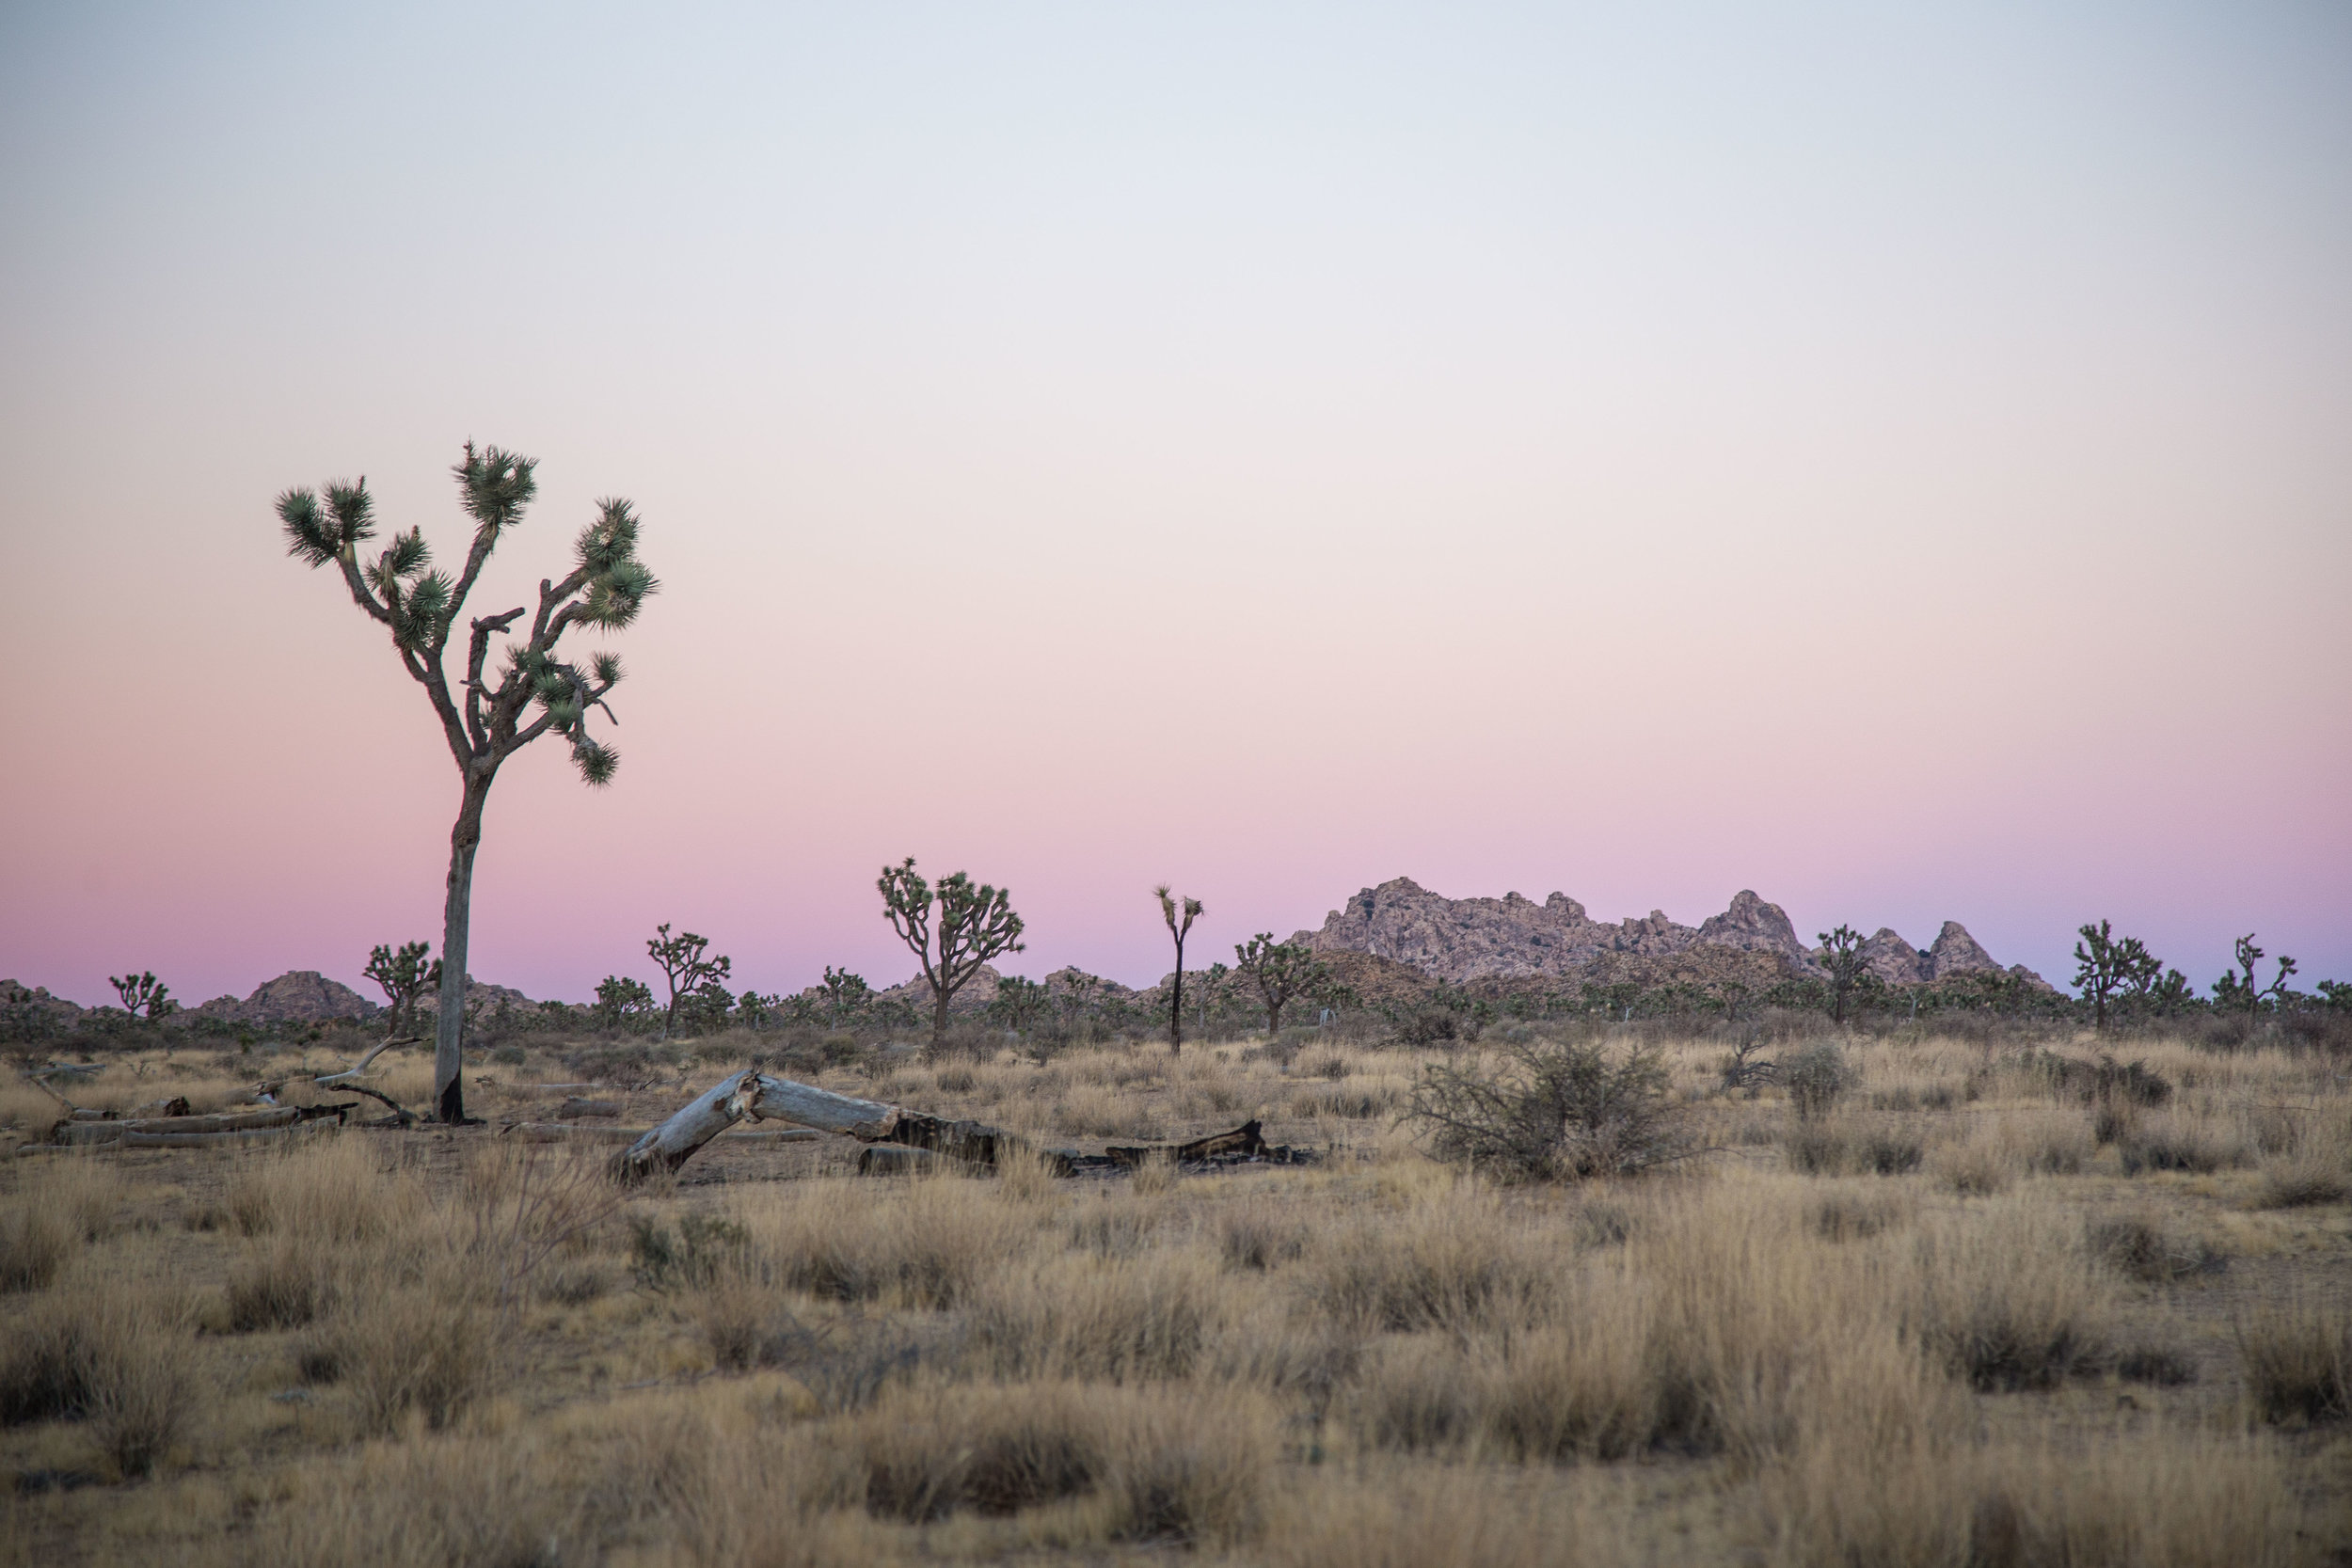 Joshua Tree Expedition | shot by Ting